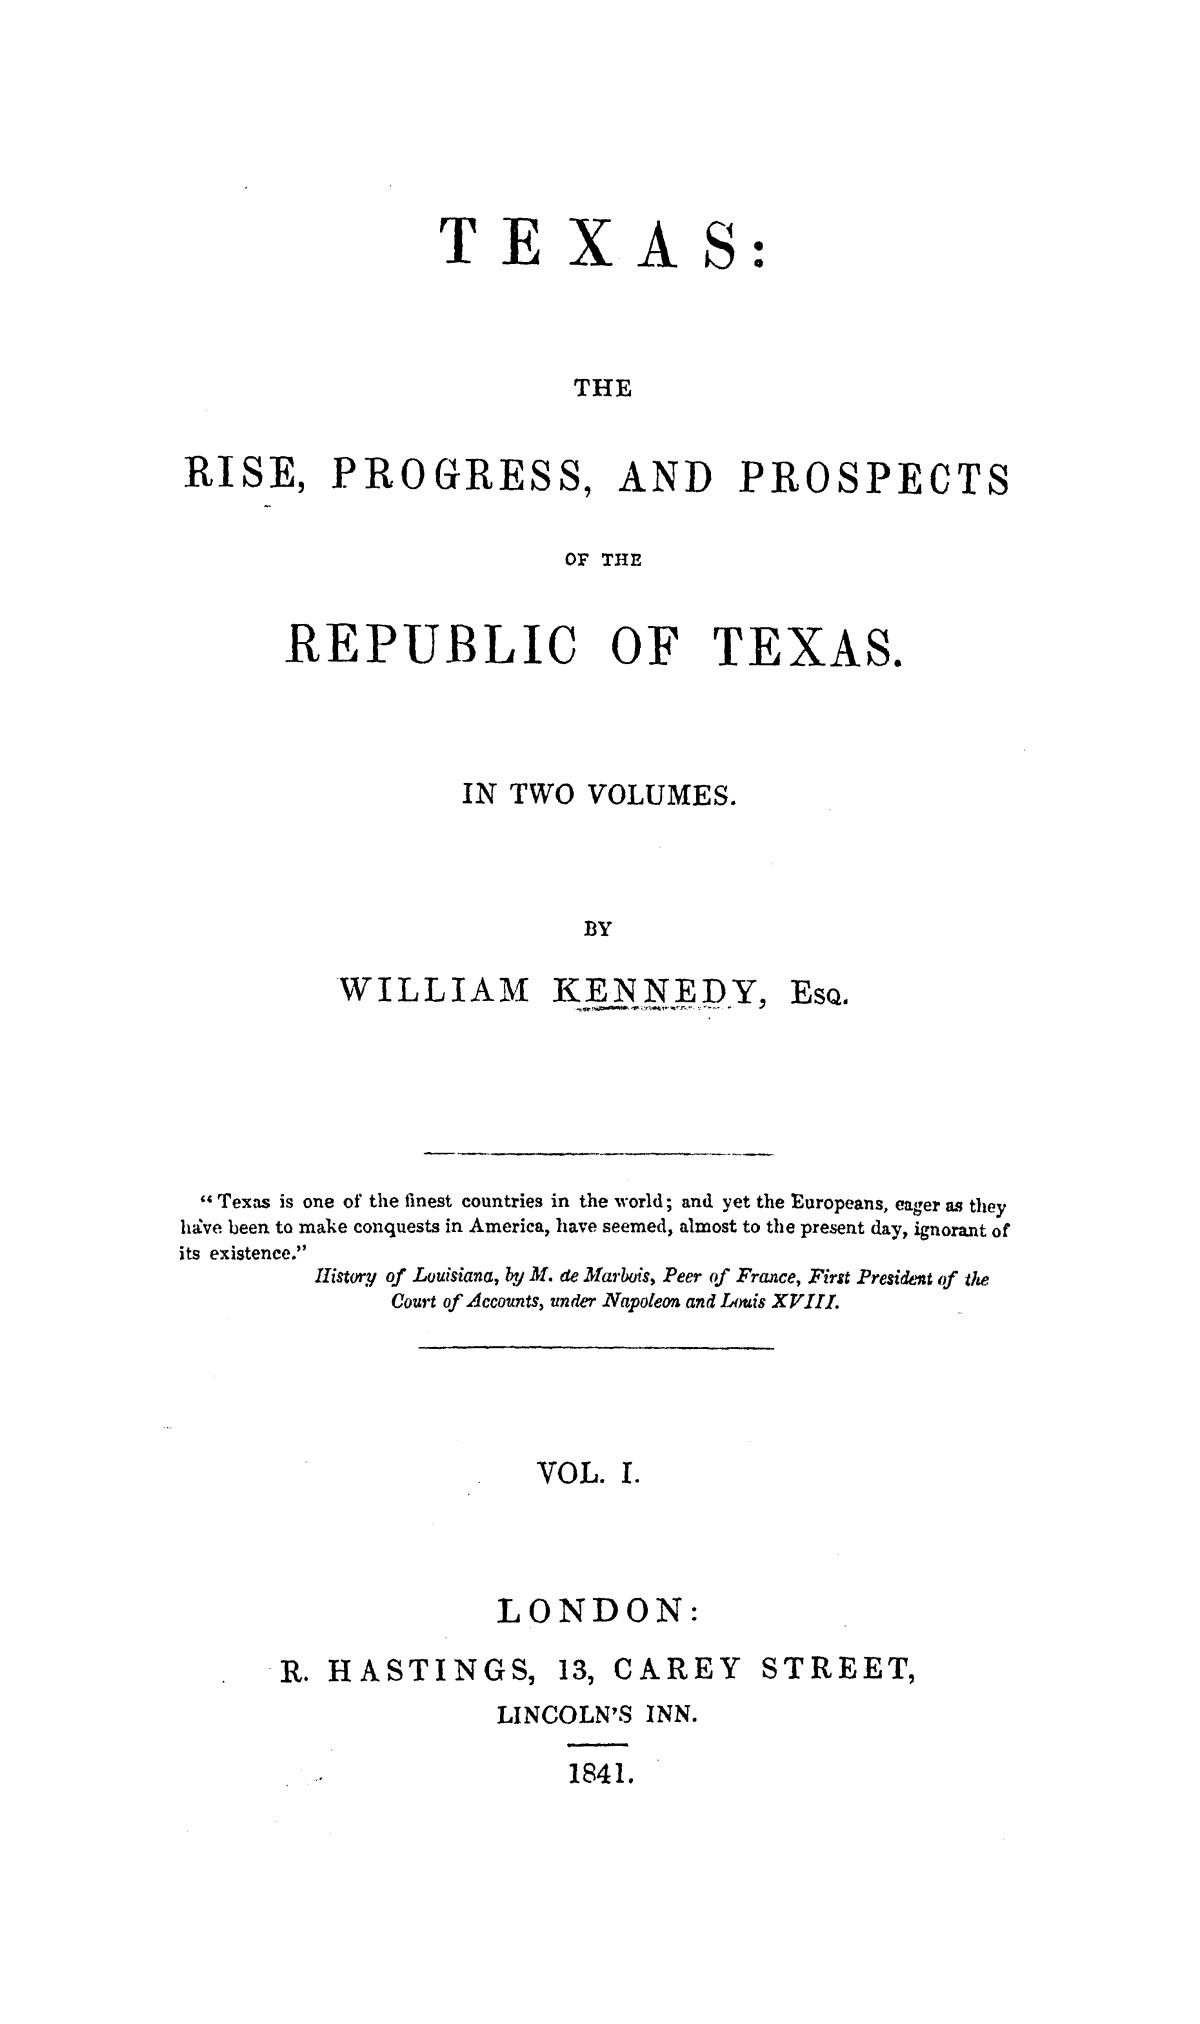 Texas: the rise, progress, and prospects of the Republic of Texas, Vol.1                                                                                                      [Sequence #]: 1 of 432